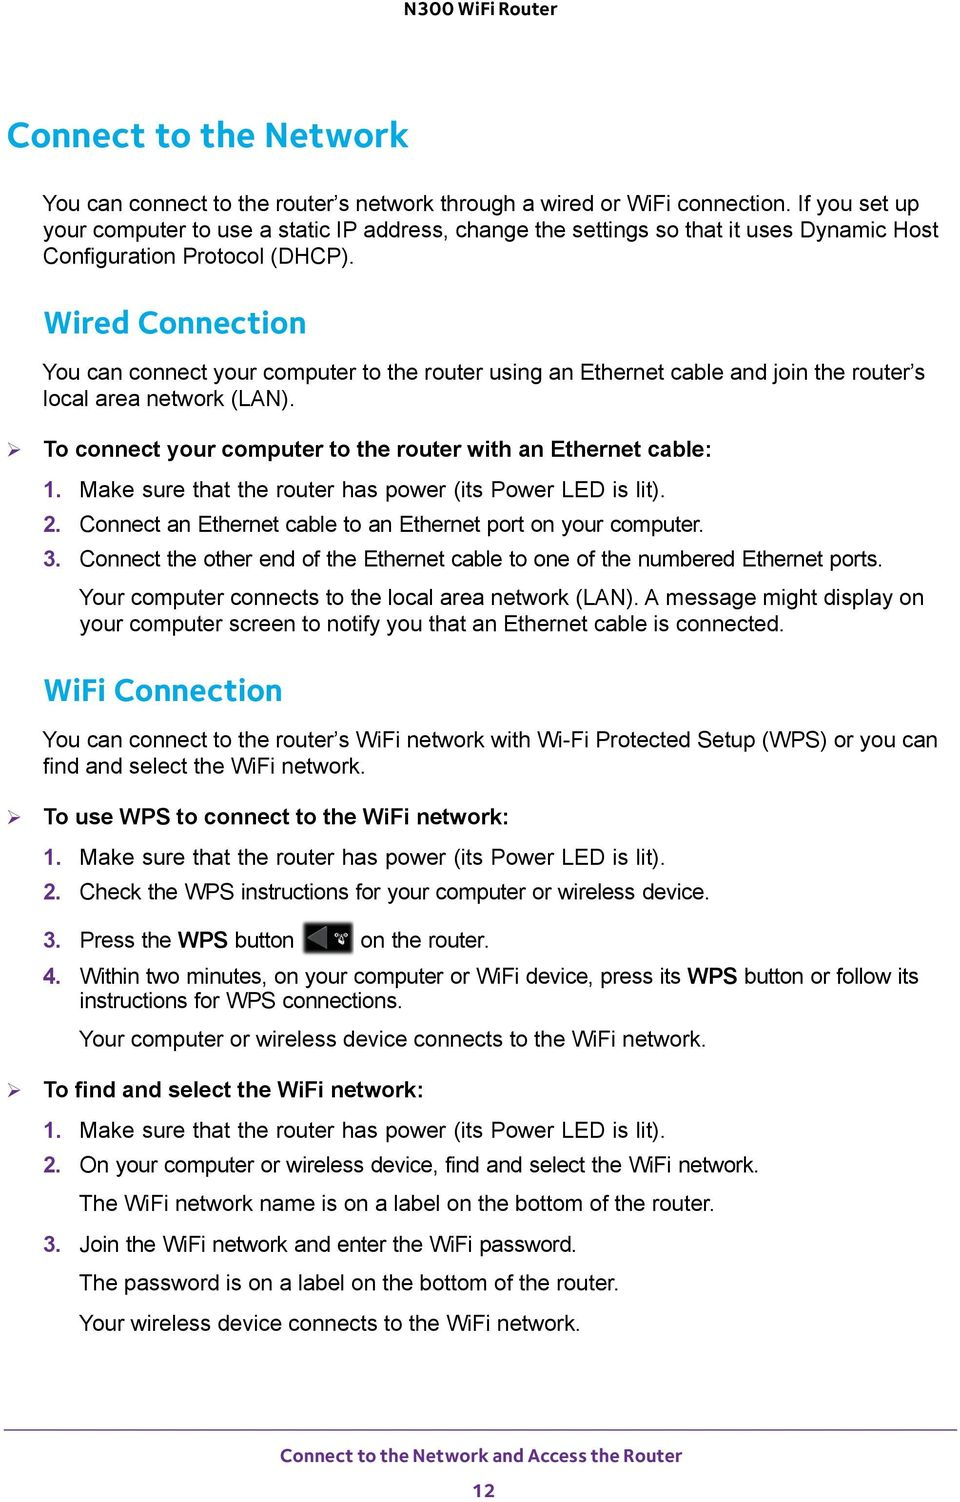 N300 Wifi Router Model Wnr2000v5 User Manual August East Plumeria Netgear Wnr1000 Wiring Diagram Wired Connection You Can Connect Your Computer To The Using An Ethernet Cable And Join